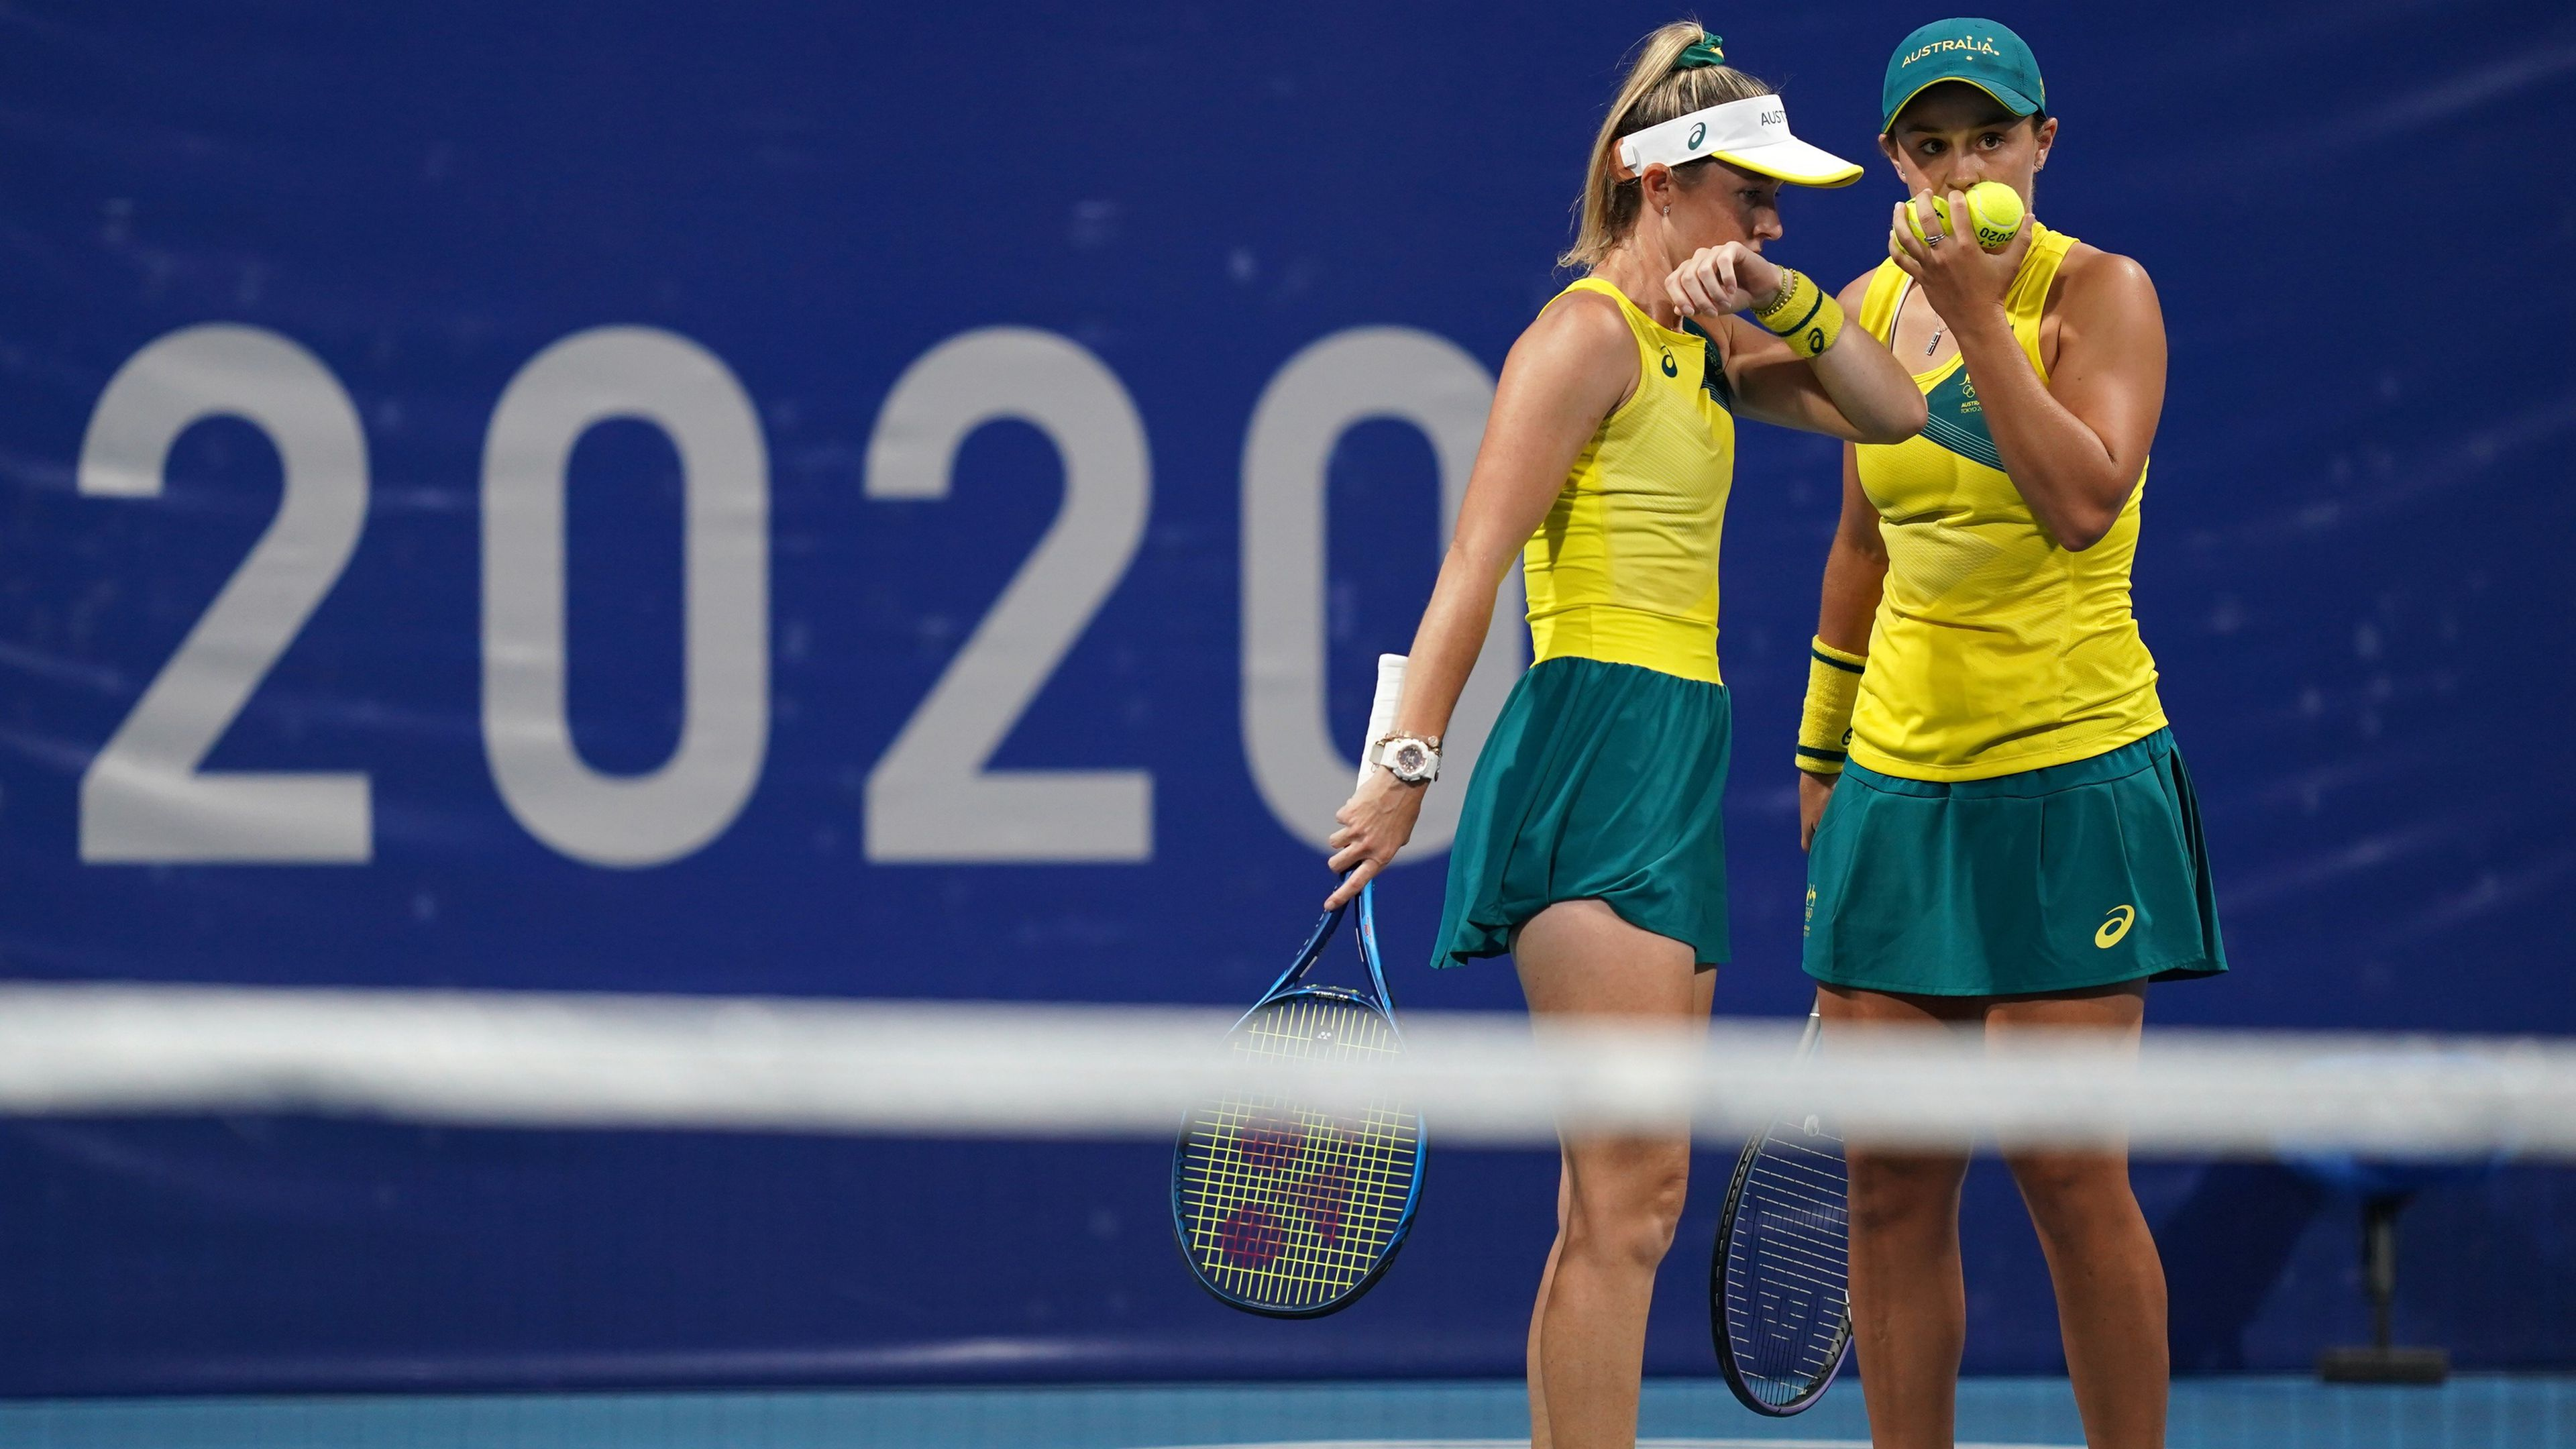 Tokyo Olympics 2021: Ash Barty and Storm Sanders out of women's doubles tournament